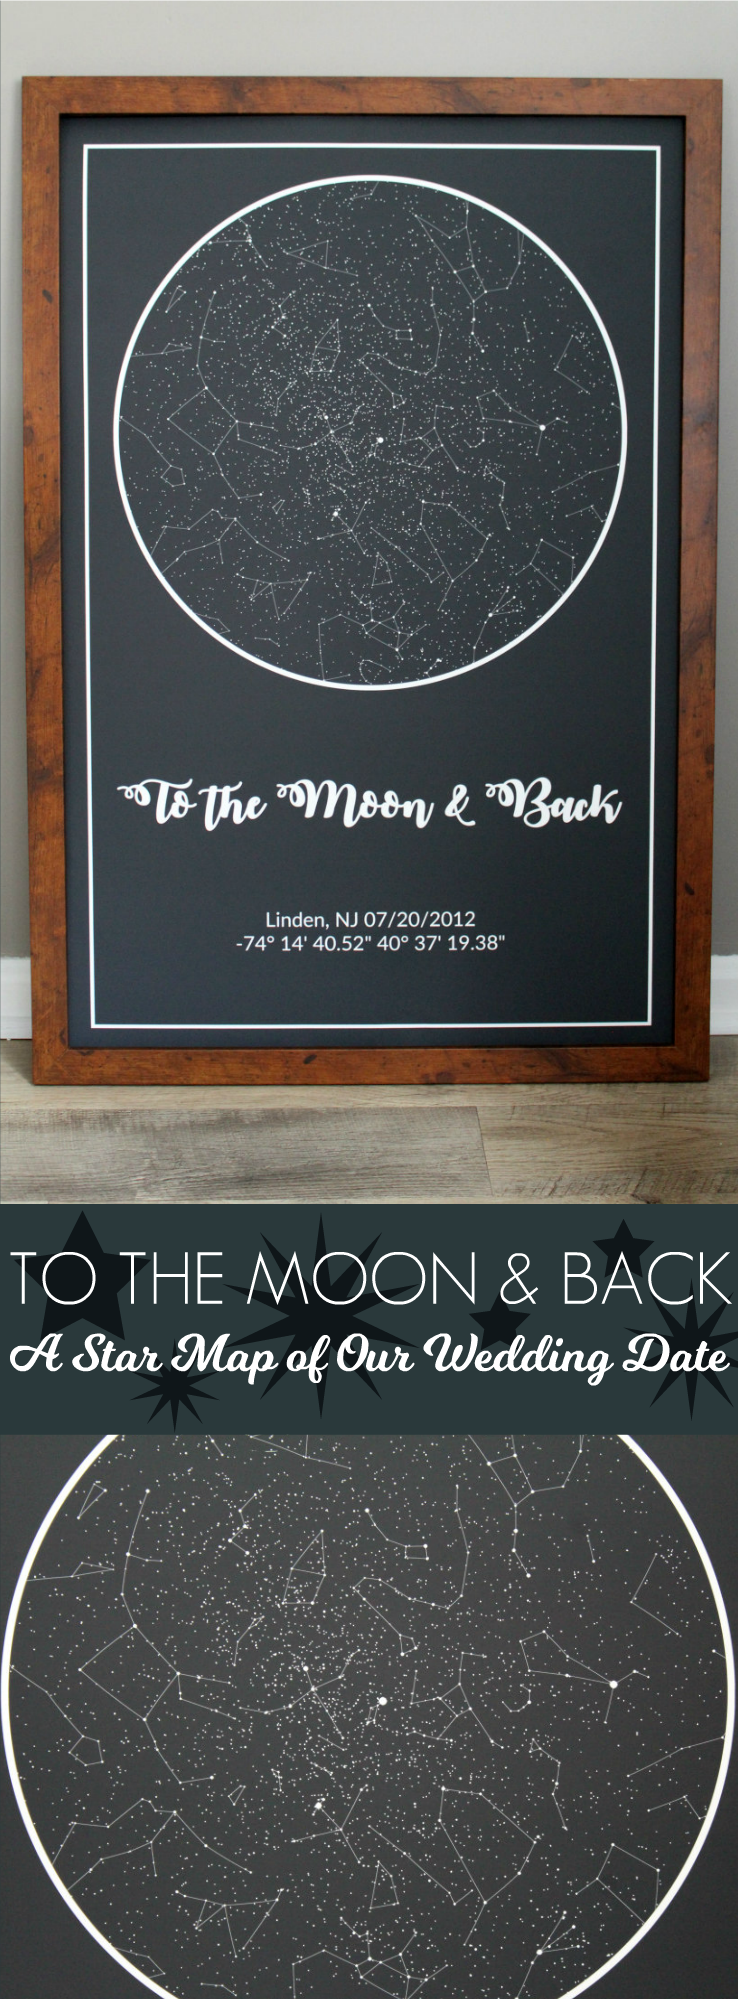 Star Map By Date And Location.To The Moon Back A Star Map Of Our Wedding Date Living La Vida